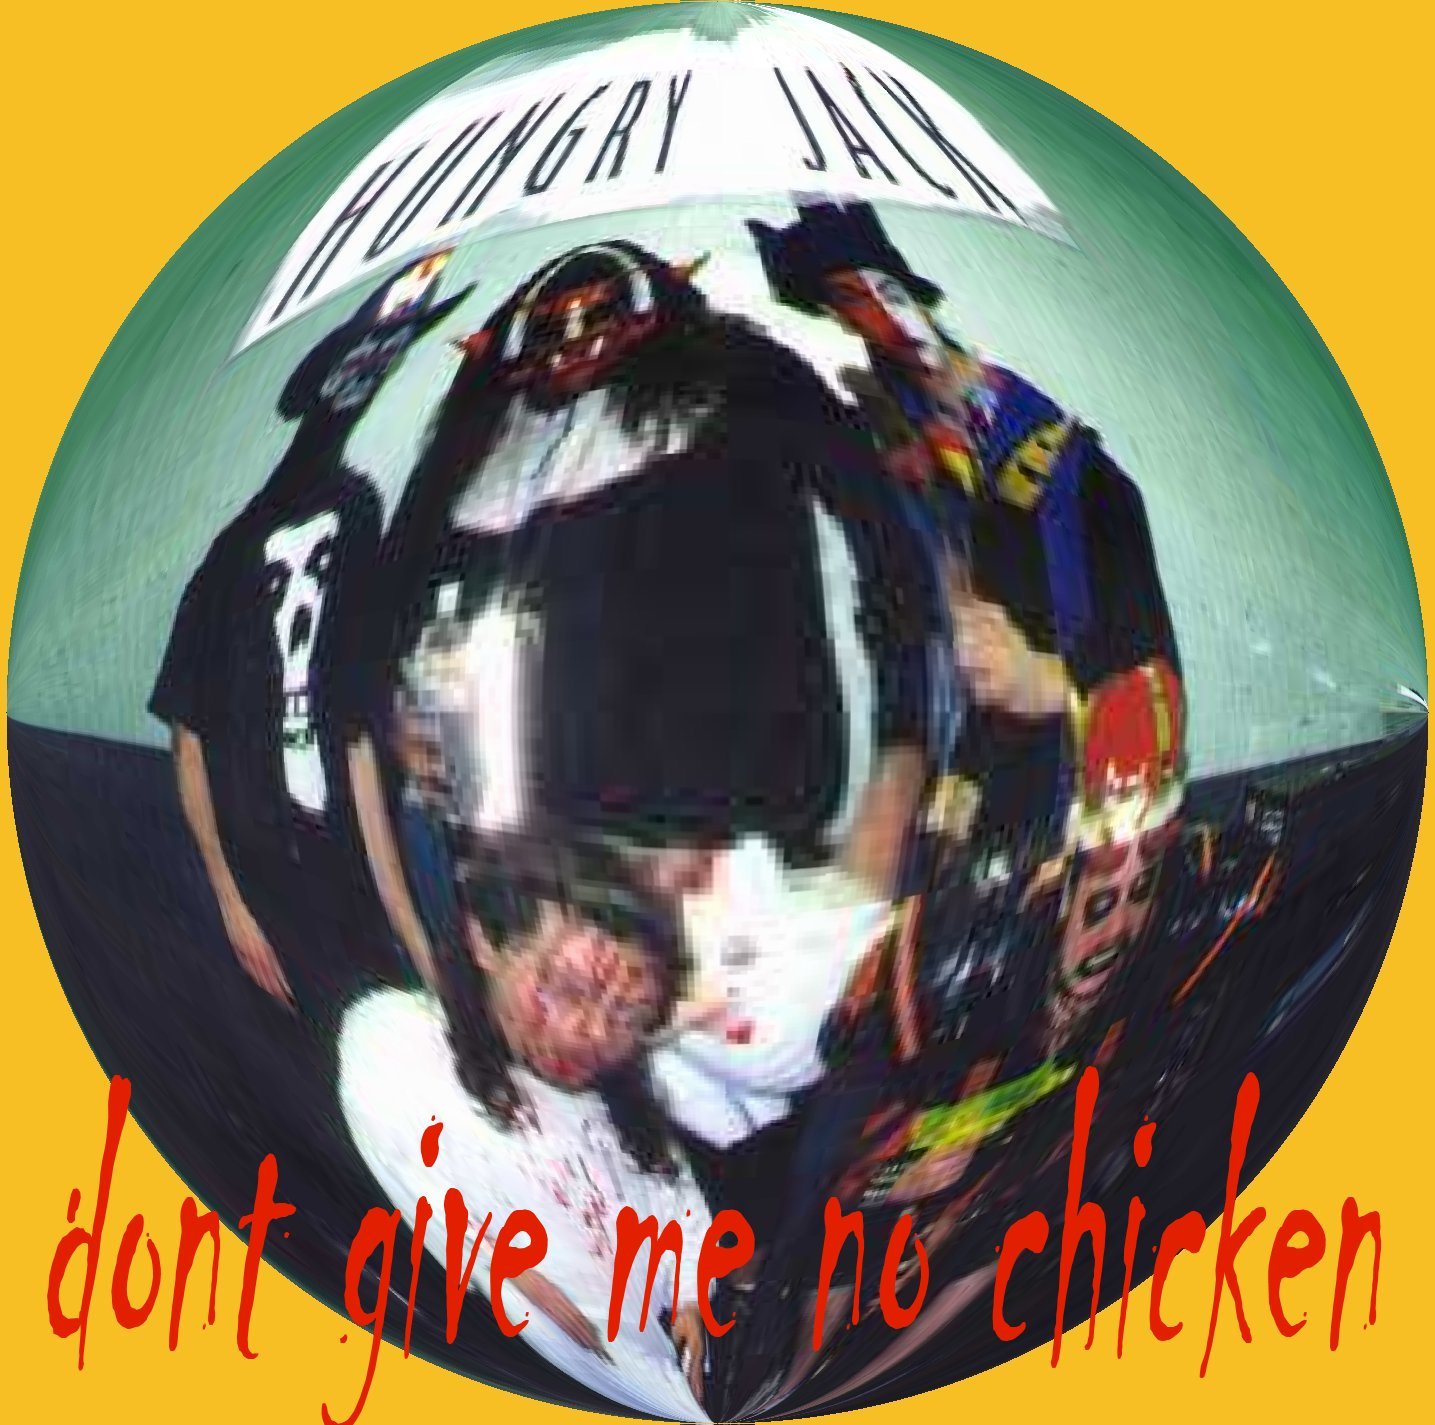 Street cheese records release / dont give me no chicken